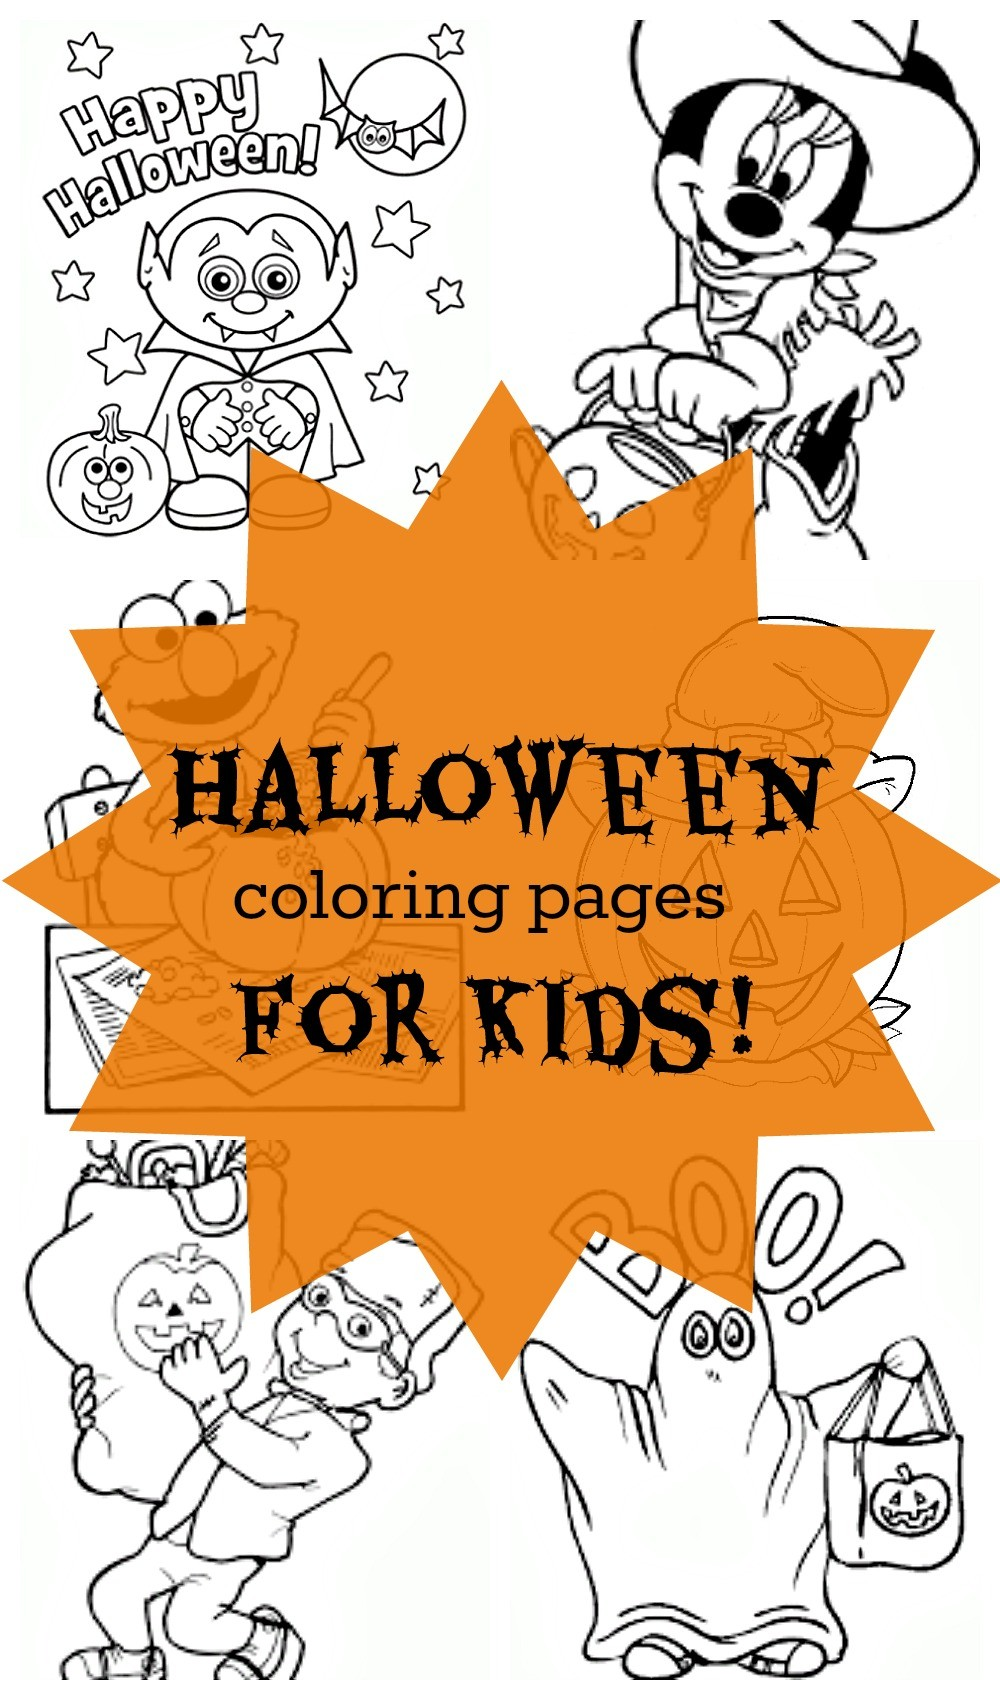 Free Halloween Coloring Pages for Kids - Super cute Halloween printable pictures and Halloween pumpkin coloring pages and activities!